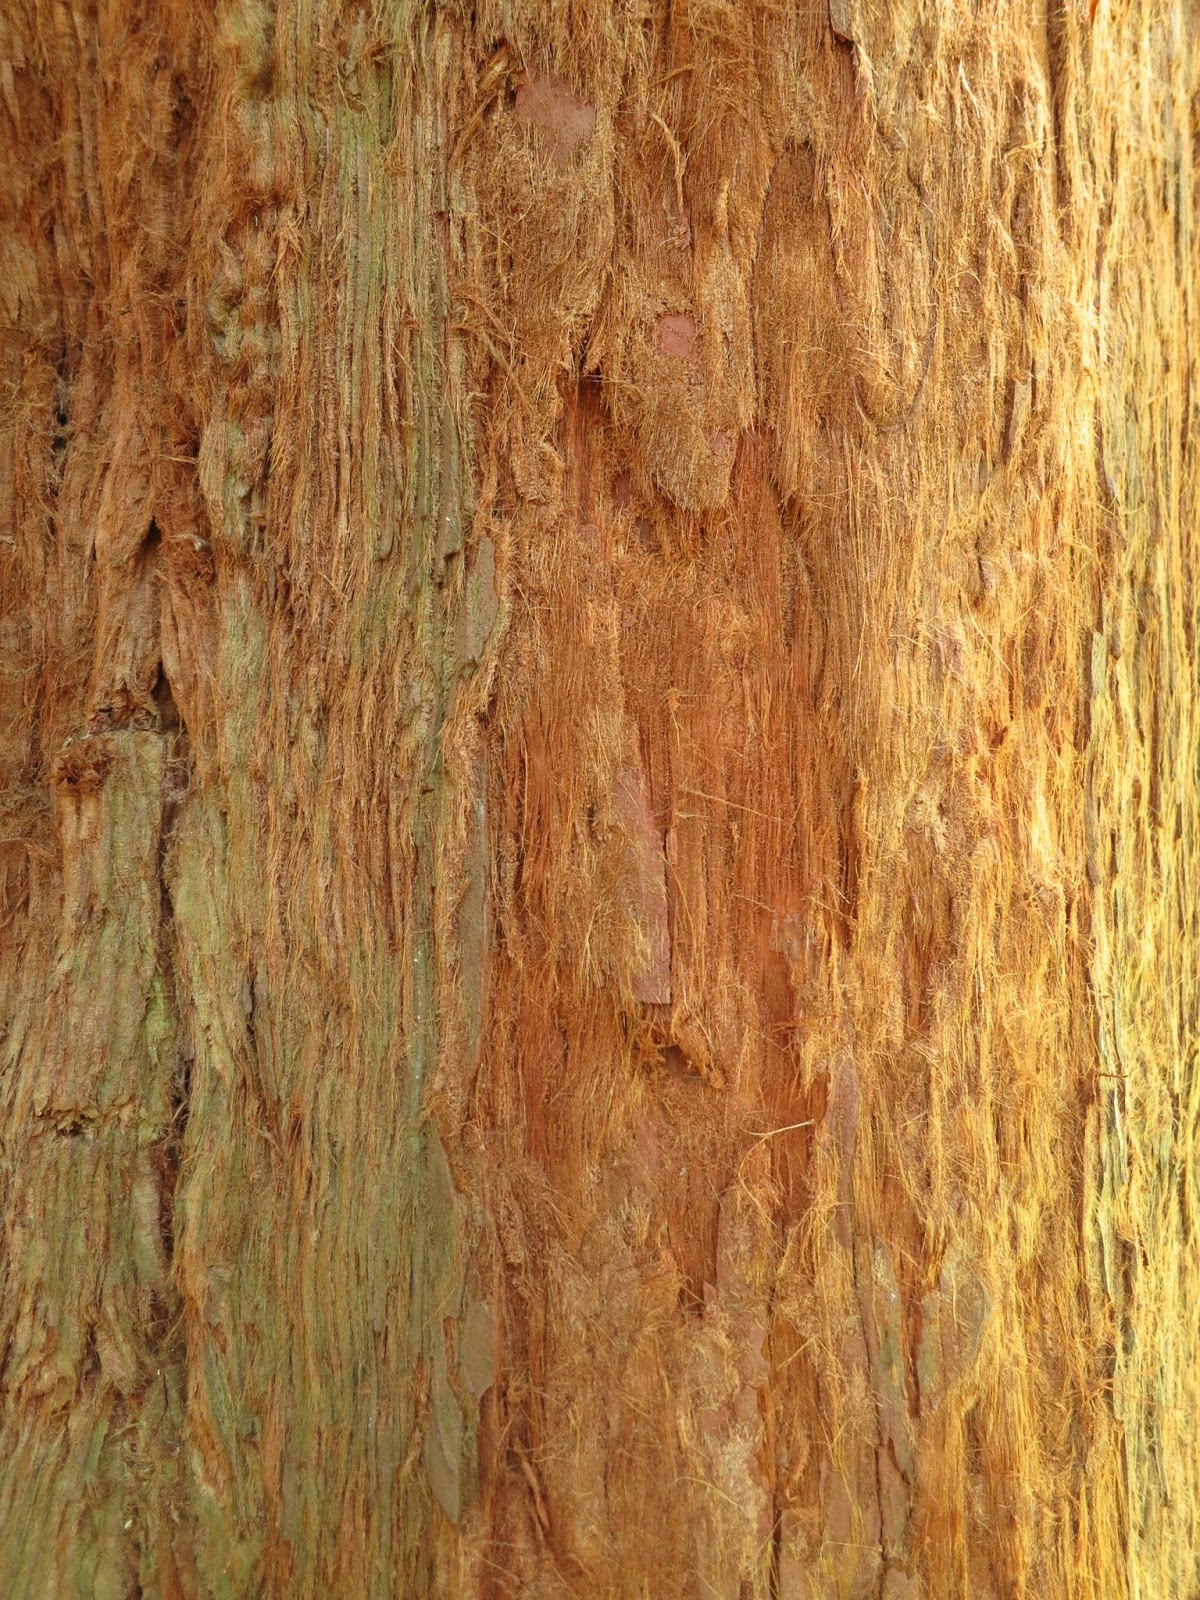 Trunk of tallest Redwood tree in the UK showing the fibrous texture of its bark.